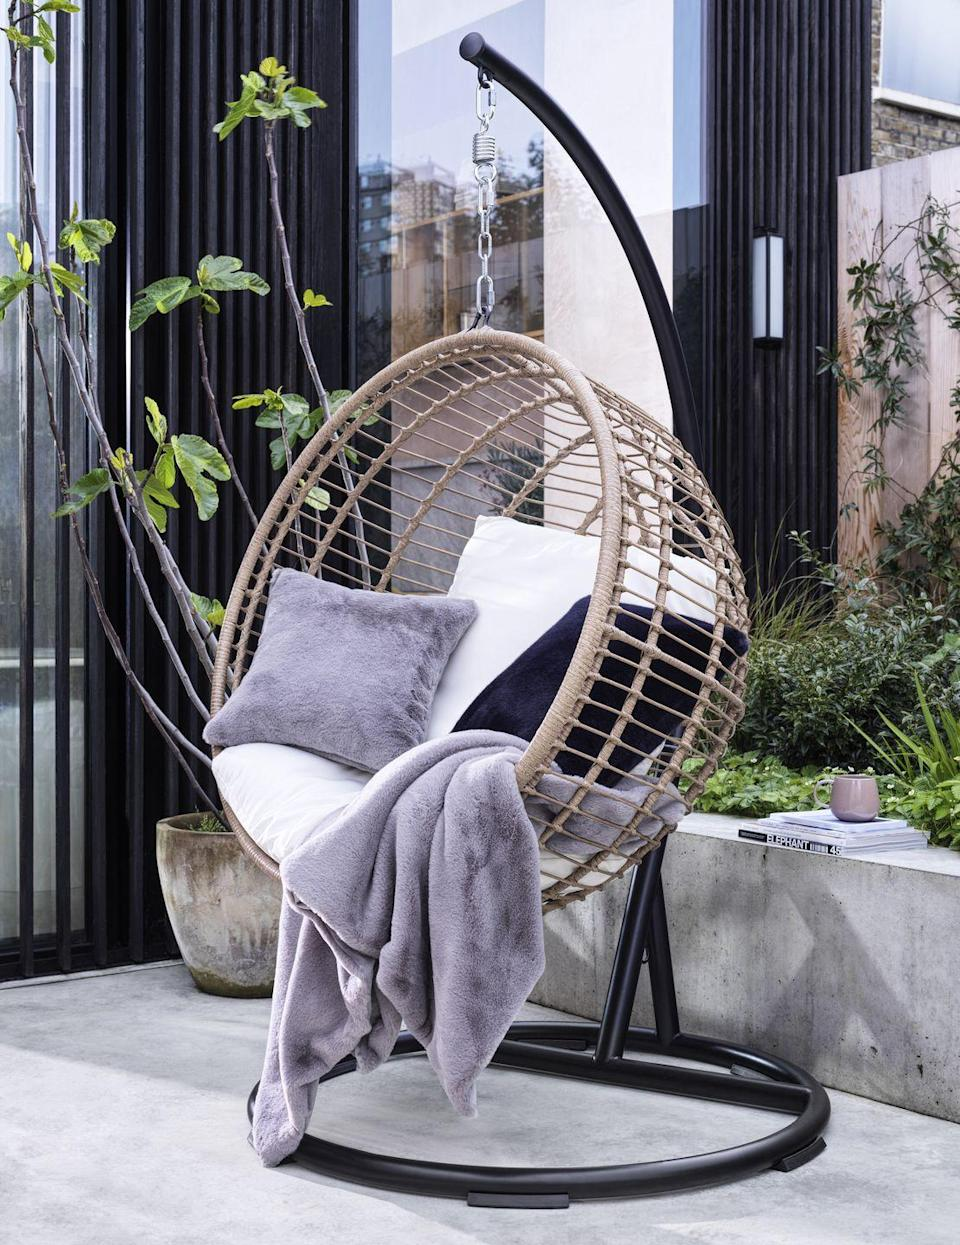 """<p>Who says <a href=""""https://www.housebeautiful.com/uk/garden/g35548498/hanging-egg-chair/"""" rel=""""nofollow noopener"""" target=""""_blank"""" data-ylk=""""slk:hanging egg chairs"""" class=""""link rapid-noclick-resp"""">hanging egg chairs</a> are just for summer? According to Habitat's trend report, they're here to stay — even if we need a blanket or two to enjoy them fully. </p><p>'Our hanging wicker chair plays into the popular trend for cocoon-like designs that provide a cosy nook to relax and wind down,' says Rachael Fell, Furniture Buying Manager.</p><p>'We've reworked the classic egg chair shape with a circular design, incorporating a rattan effect as a nod to nature and escapism. It can be easily moved indoors if you're up against rain or snow when craving that me-time moment.'</p>"""